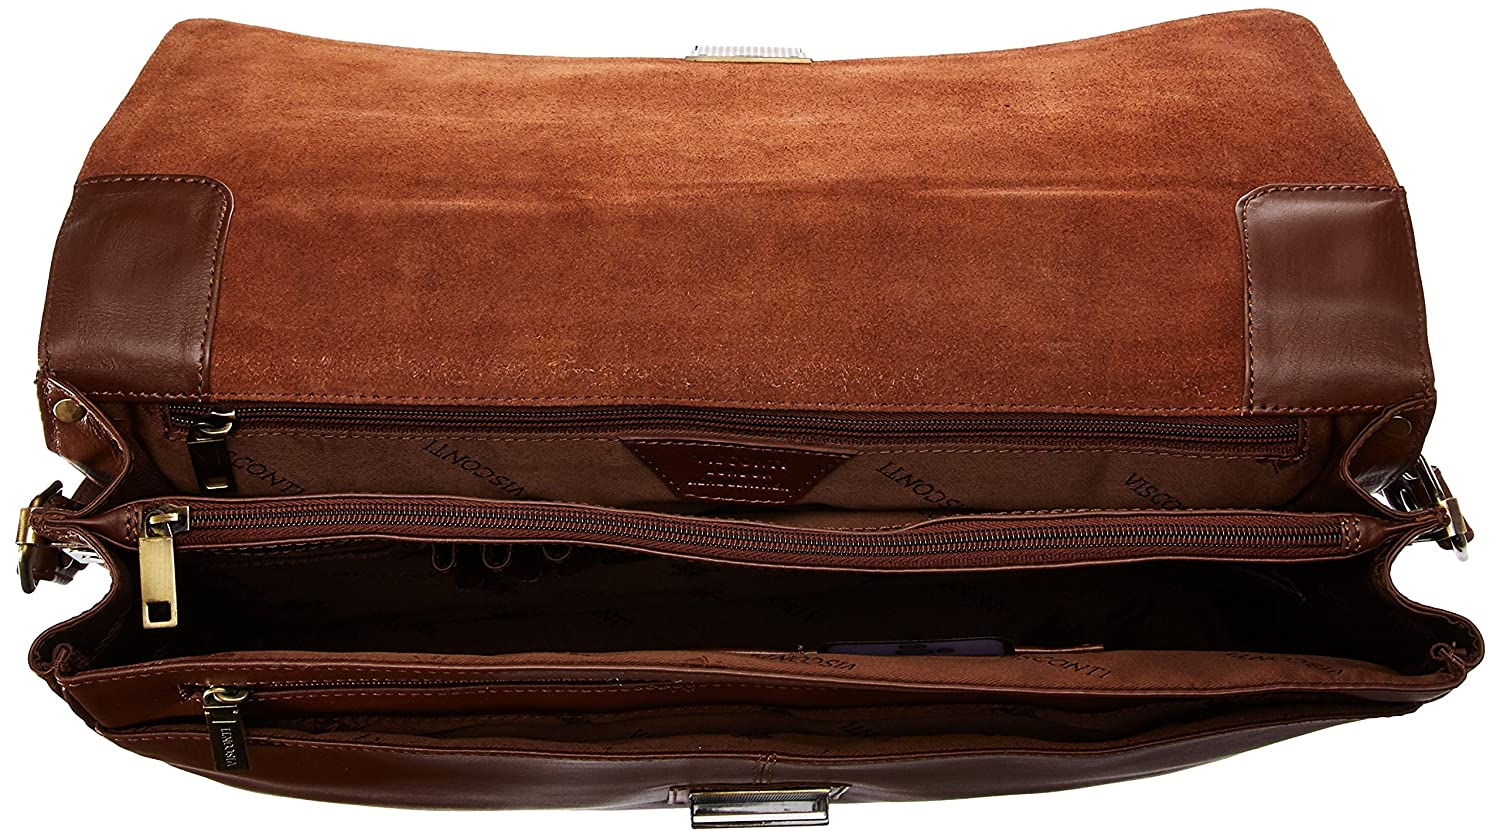 Visconti 18074 Briefcase Black One Size Visconti Luggage